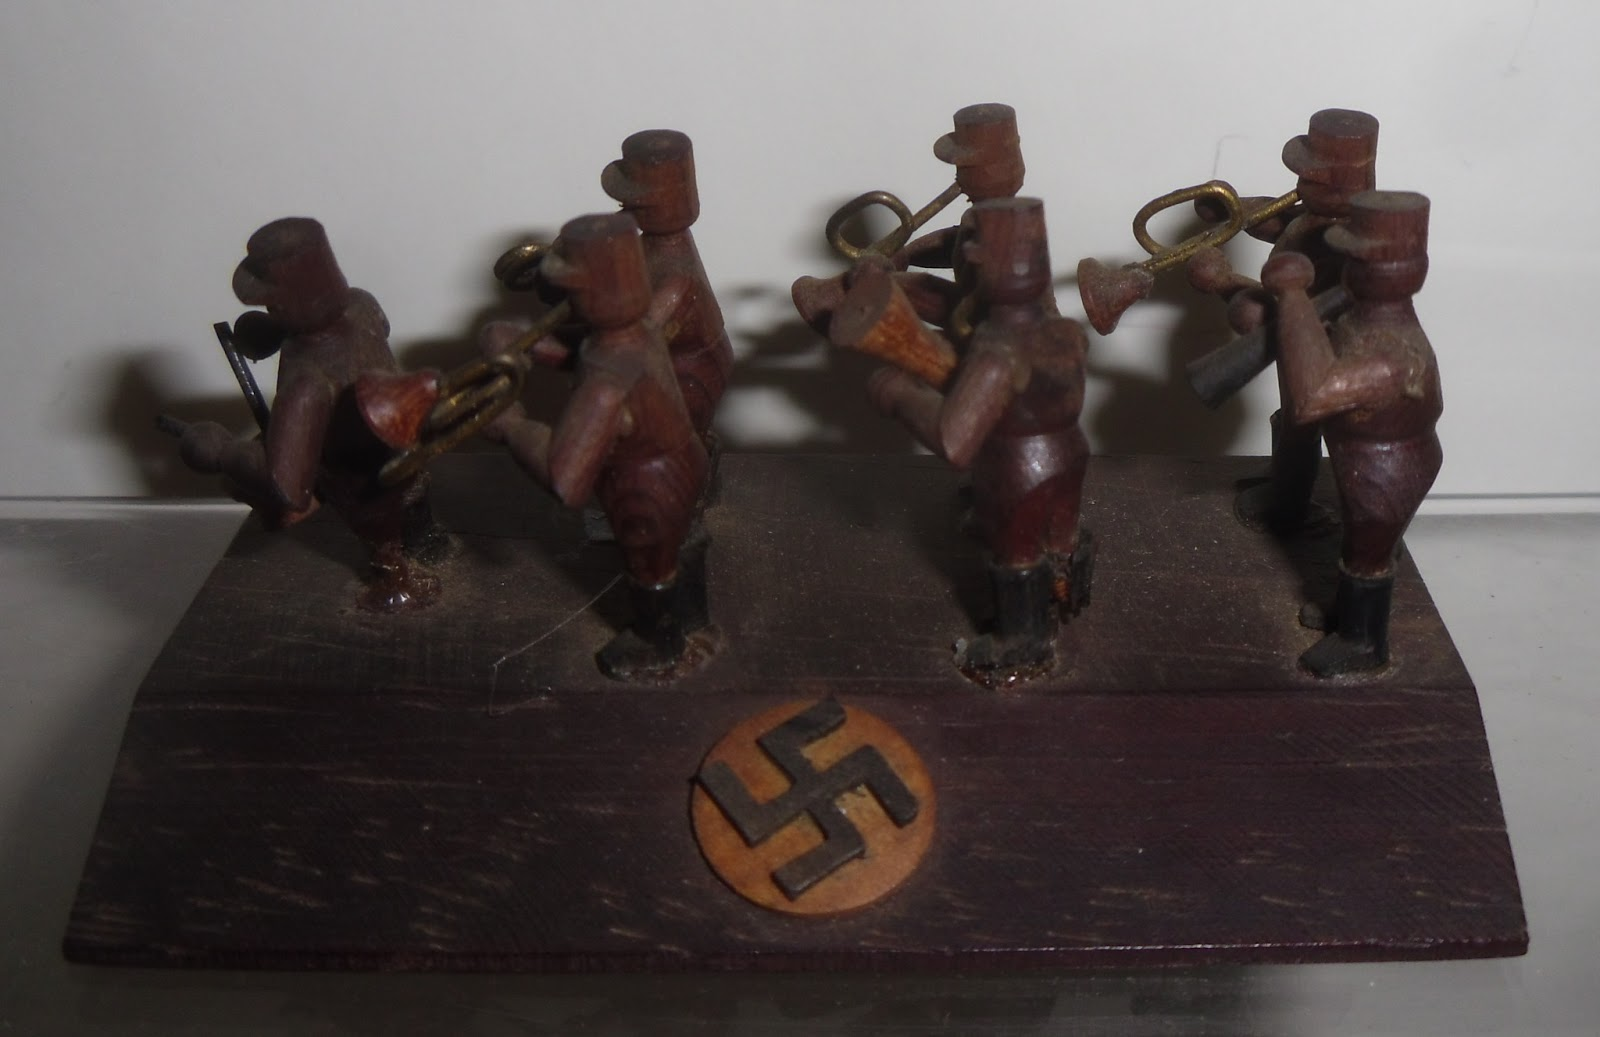 Straight From The Workshops Of Bavaria Or Black Forest Anywhere Else That Had A Tradition Wooden Toy Plaything Production Now Usually Erroneously